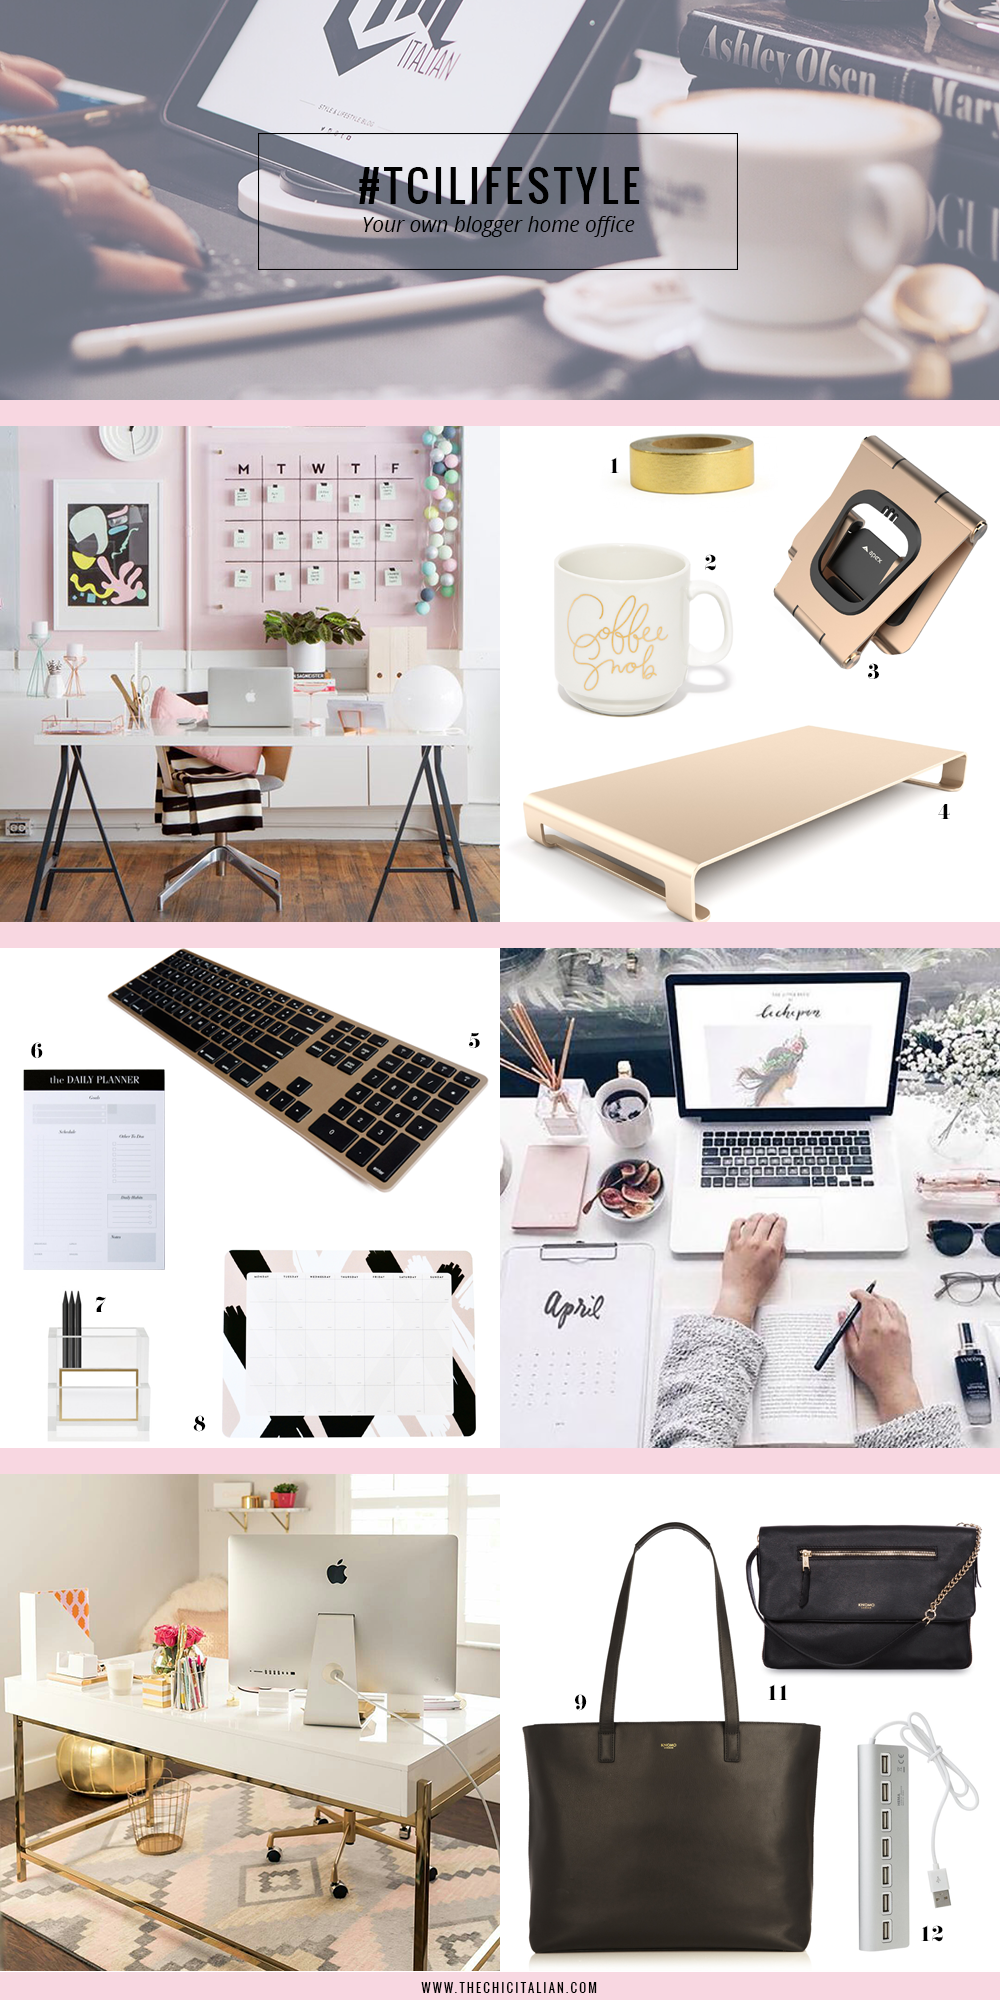 YOUR OWN BLOGGER HOME OFFICE || THECHICITALIAN ||12 items you need to give your home office an blogger makeover